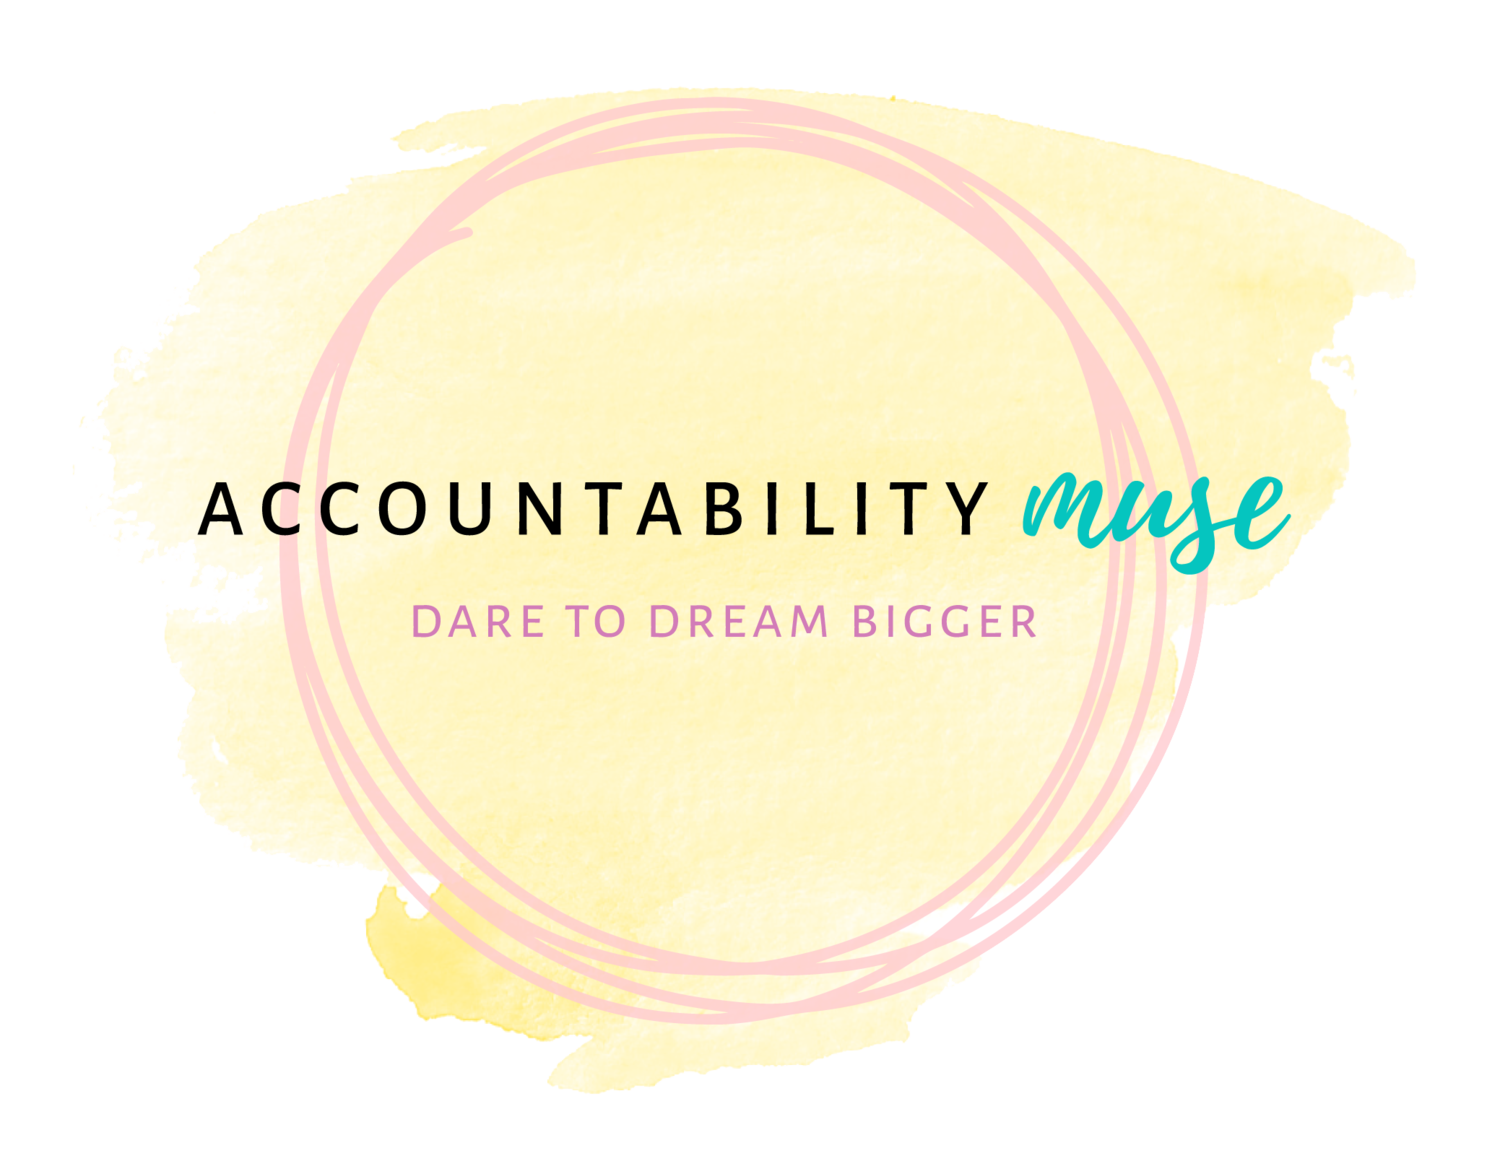 Accountability Muse